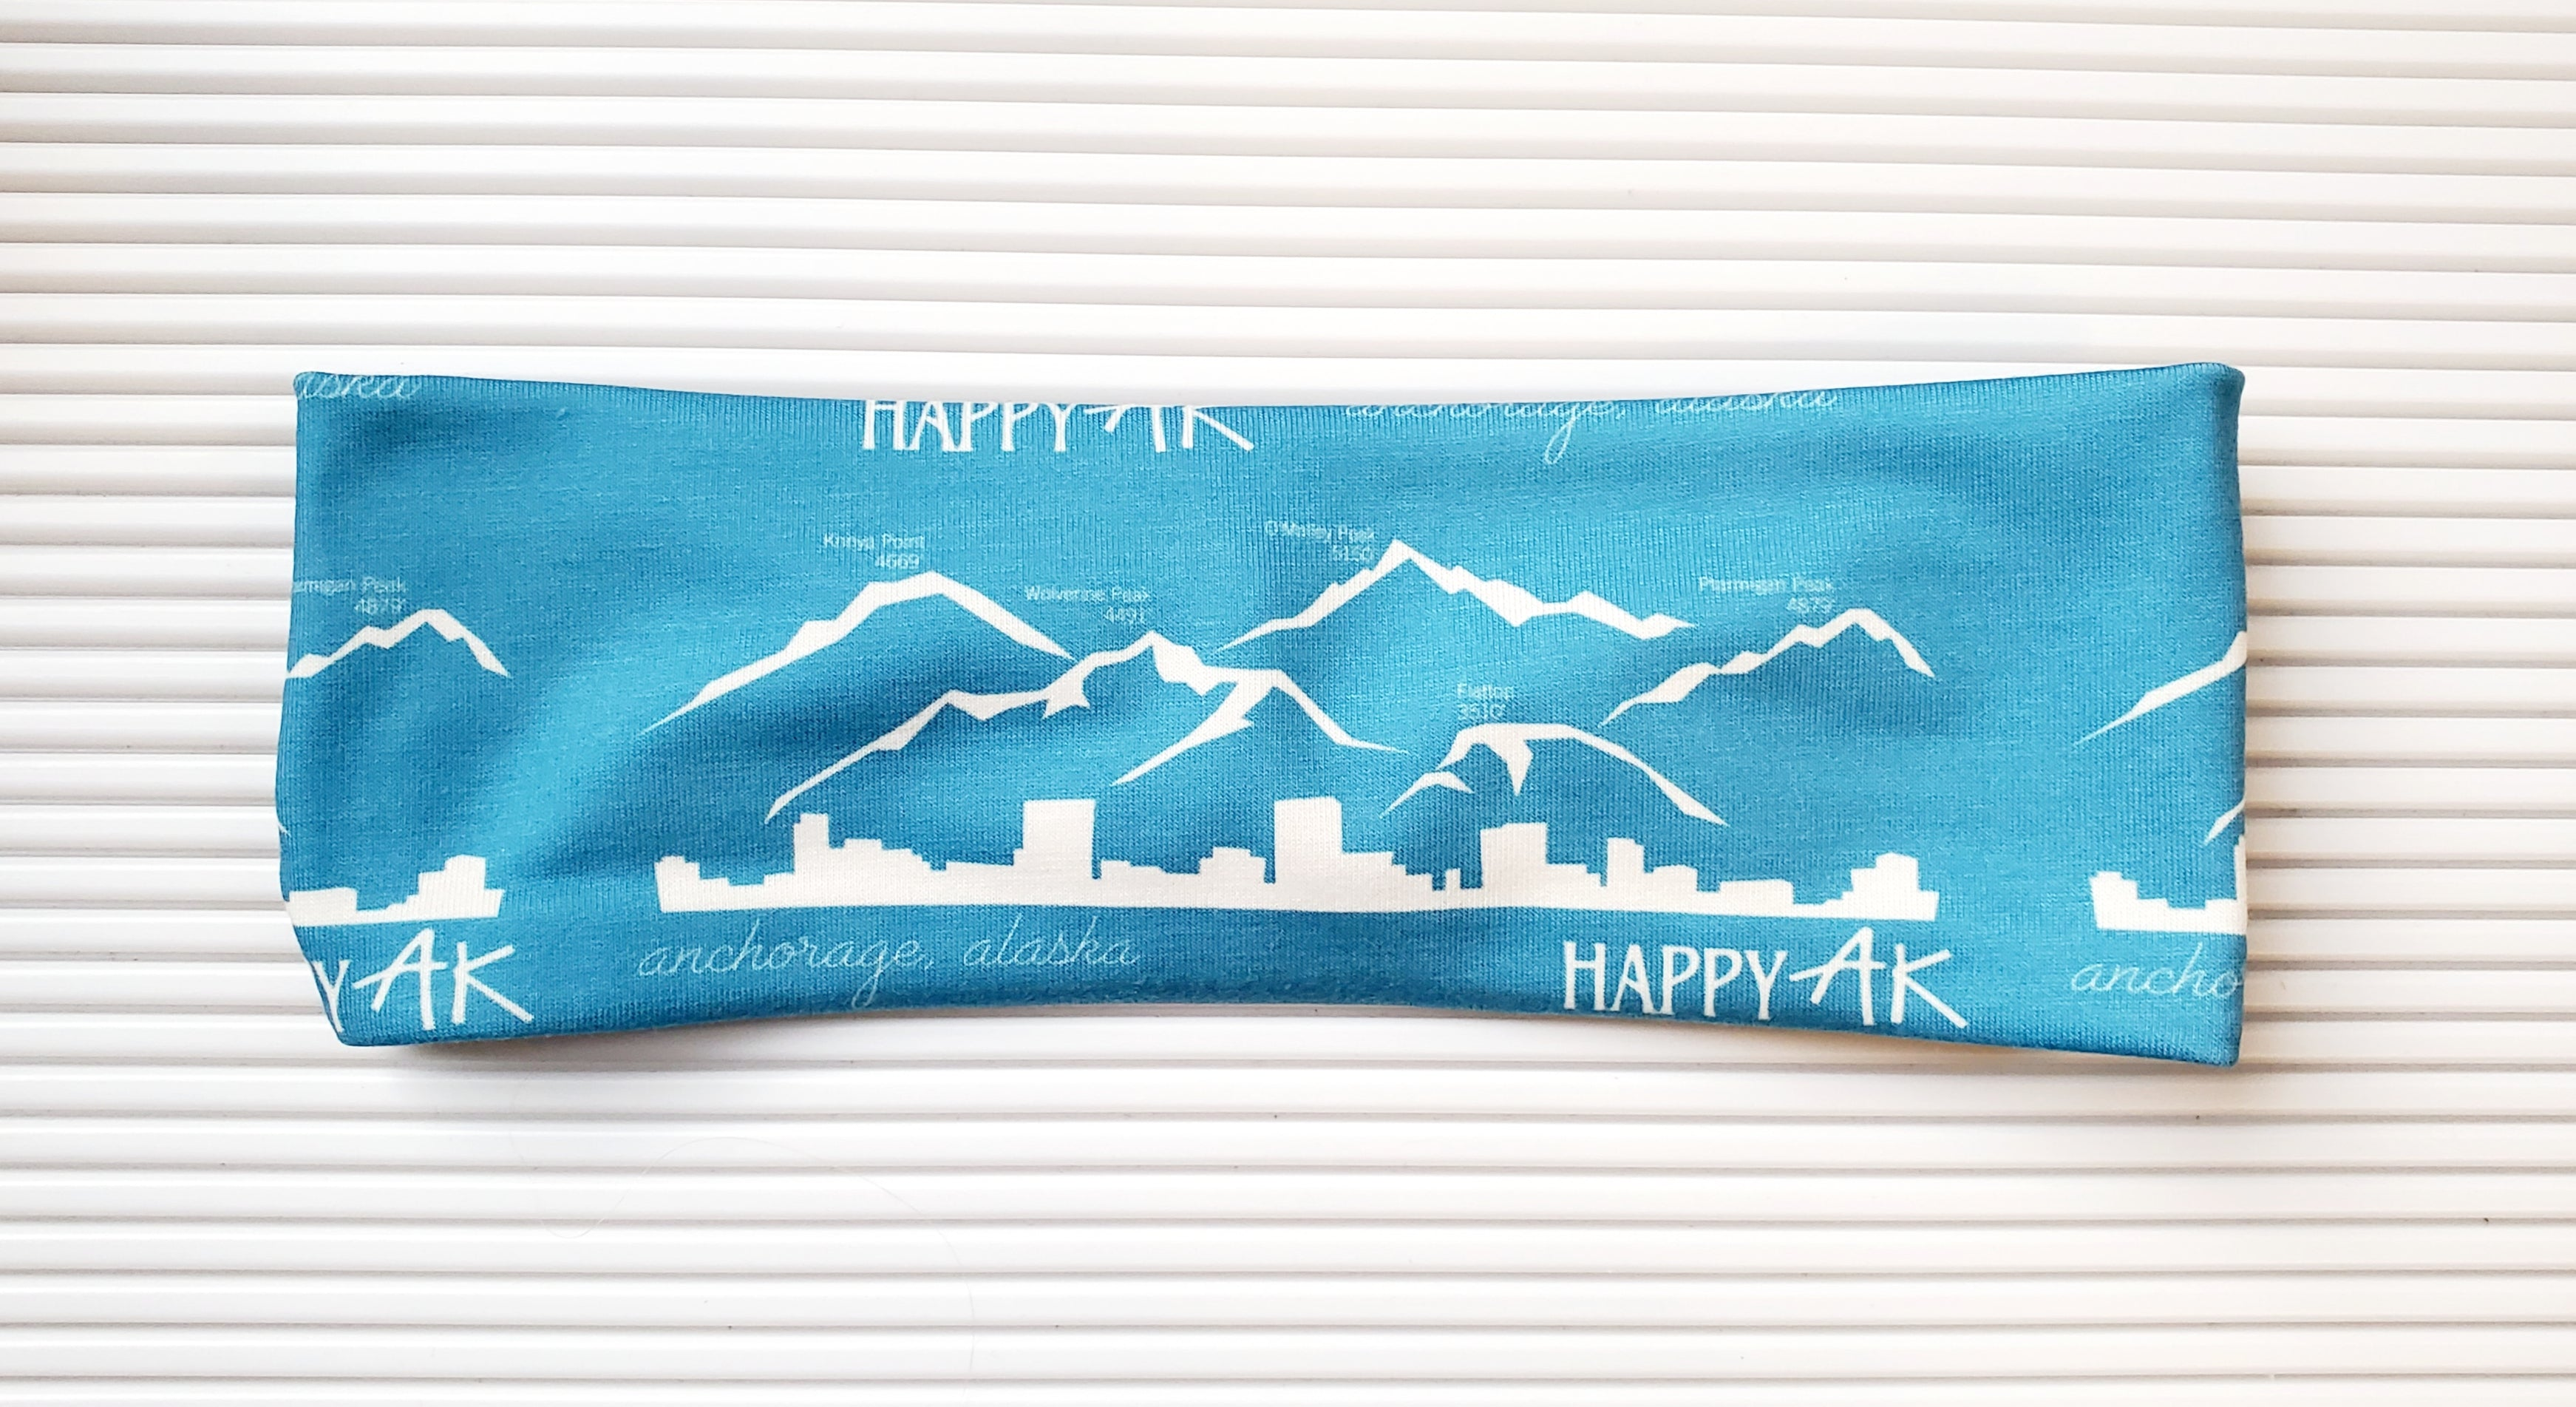 Anchorage Mountain Headband - Headband Happy AK